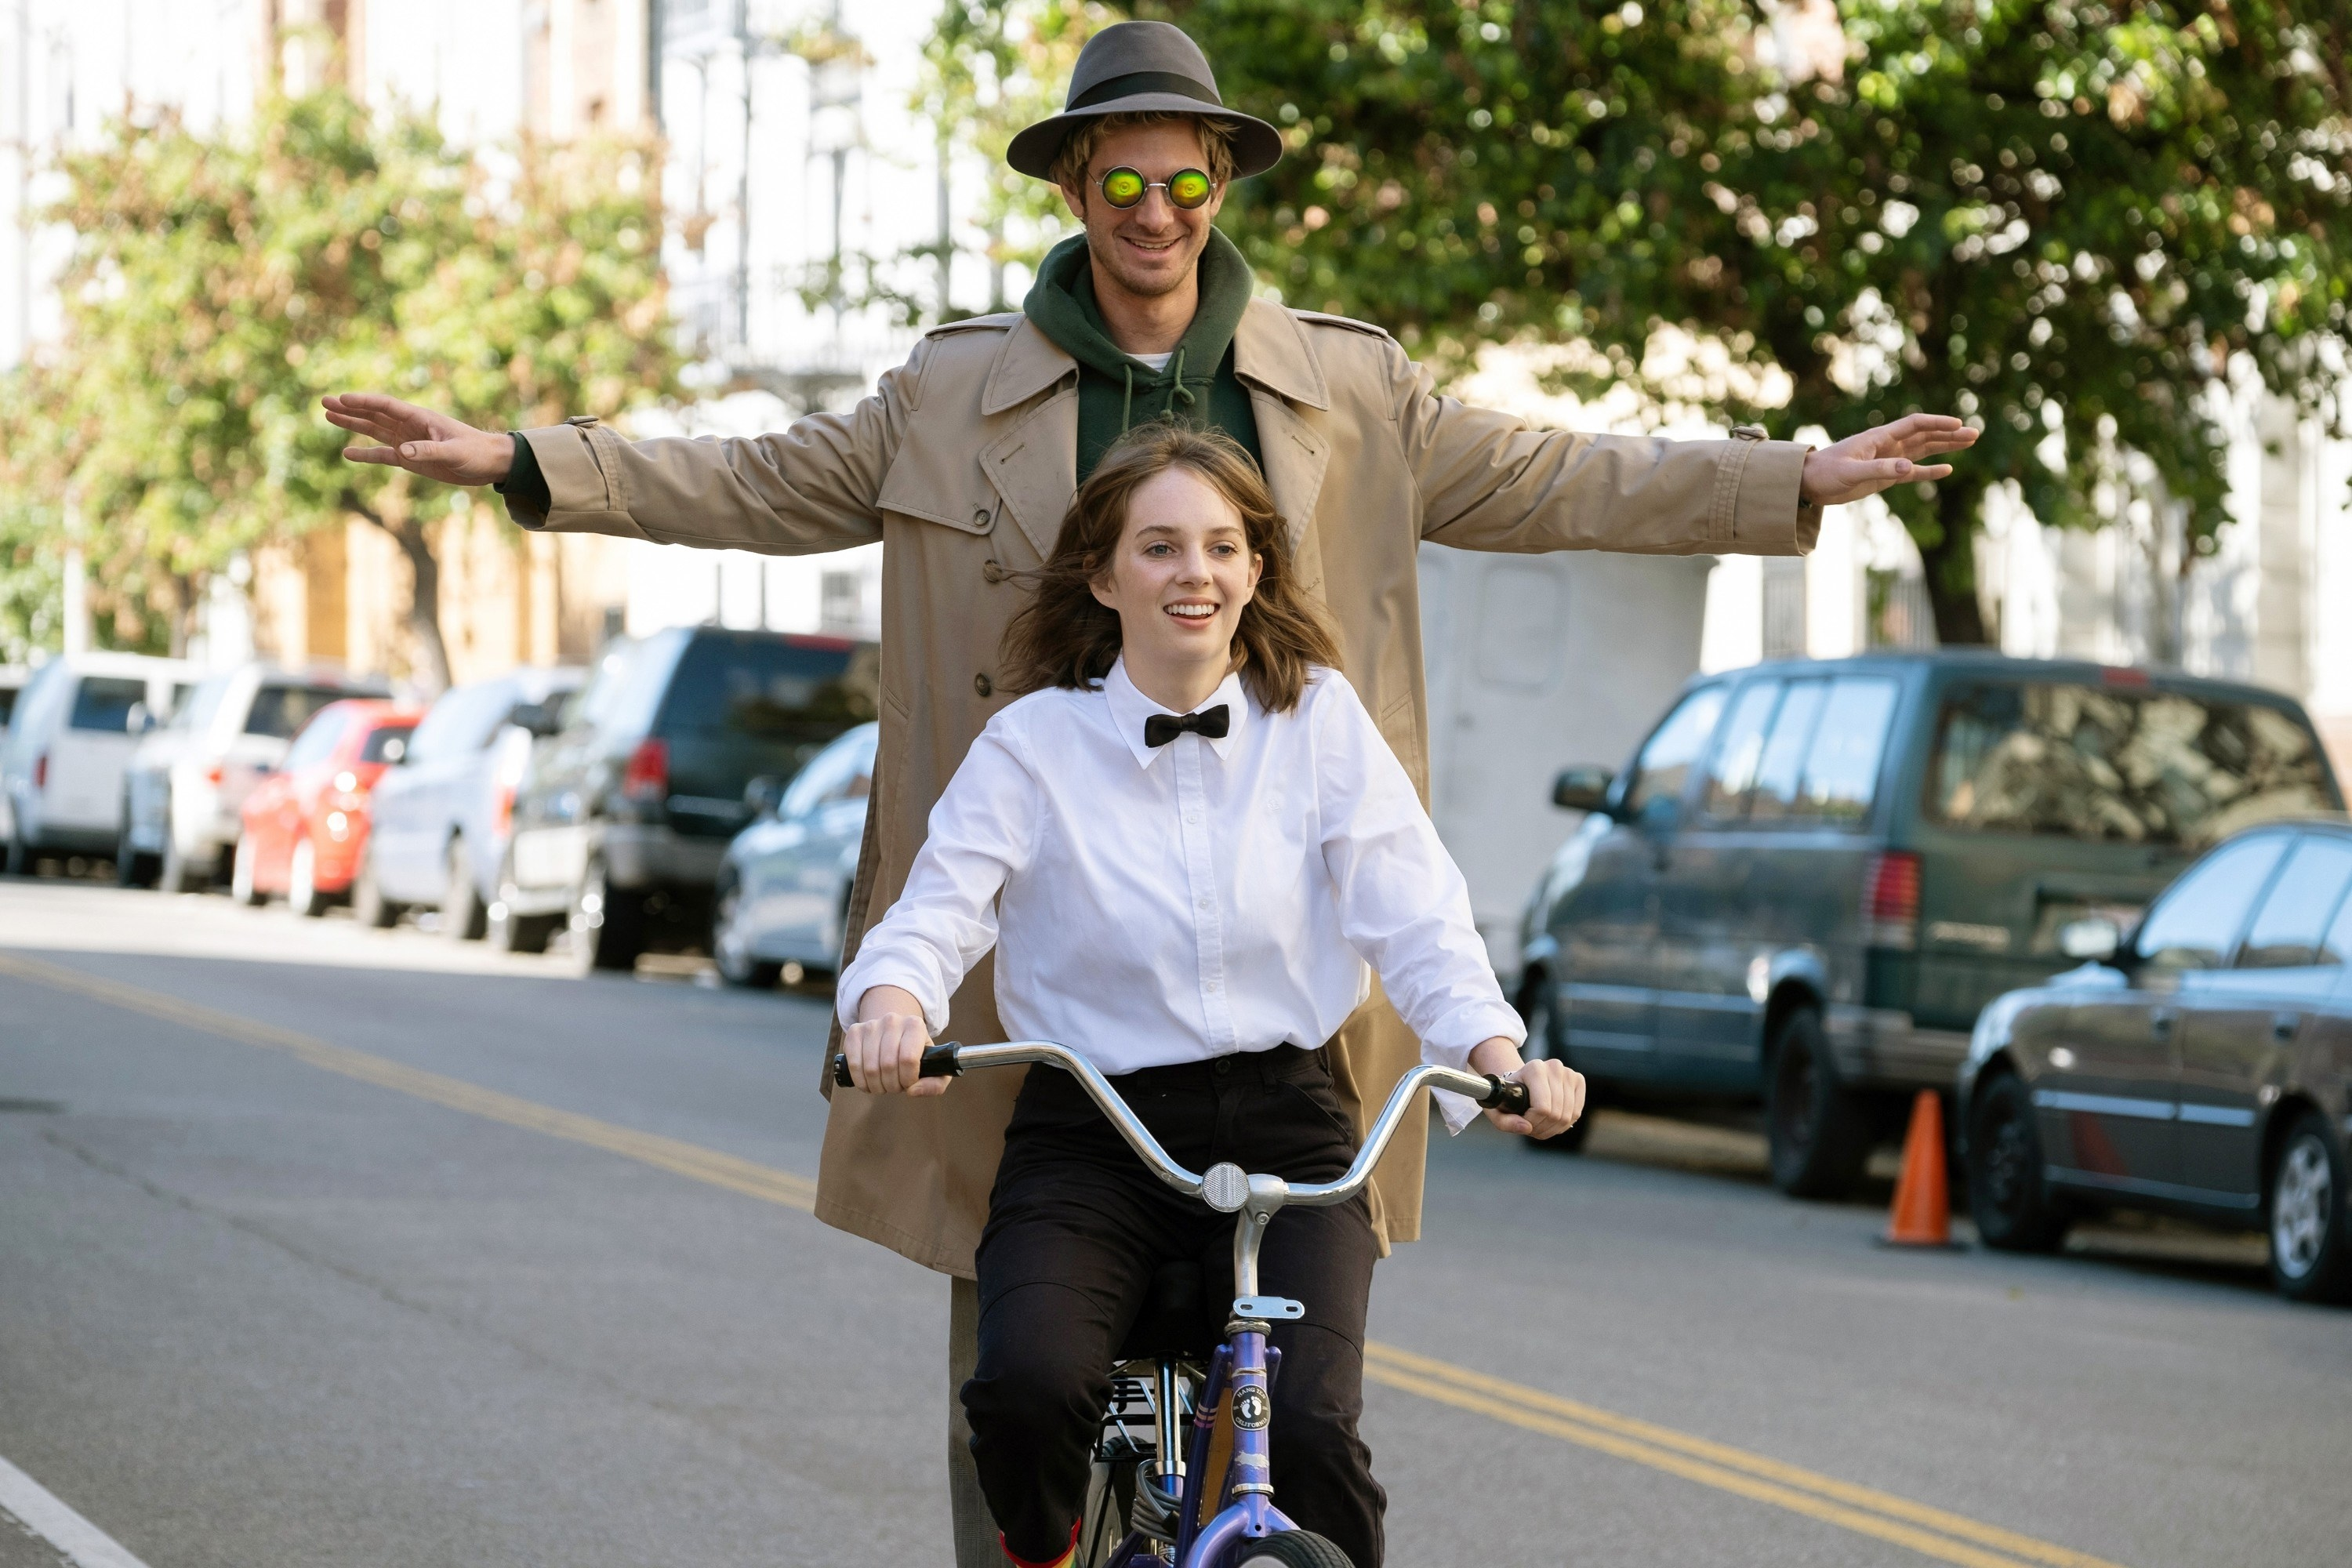 Andrew Garfield and Maya Hawke riding on a bicycle in the street